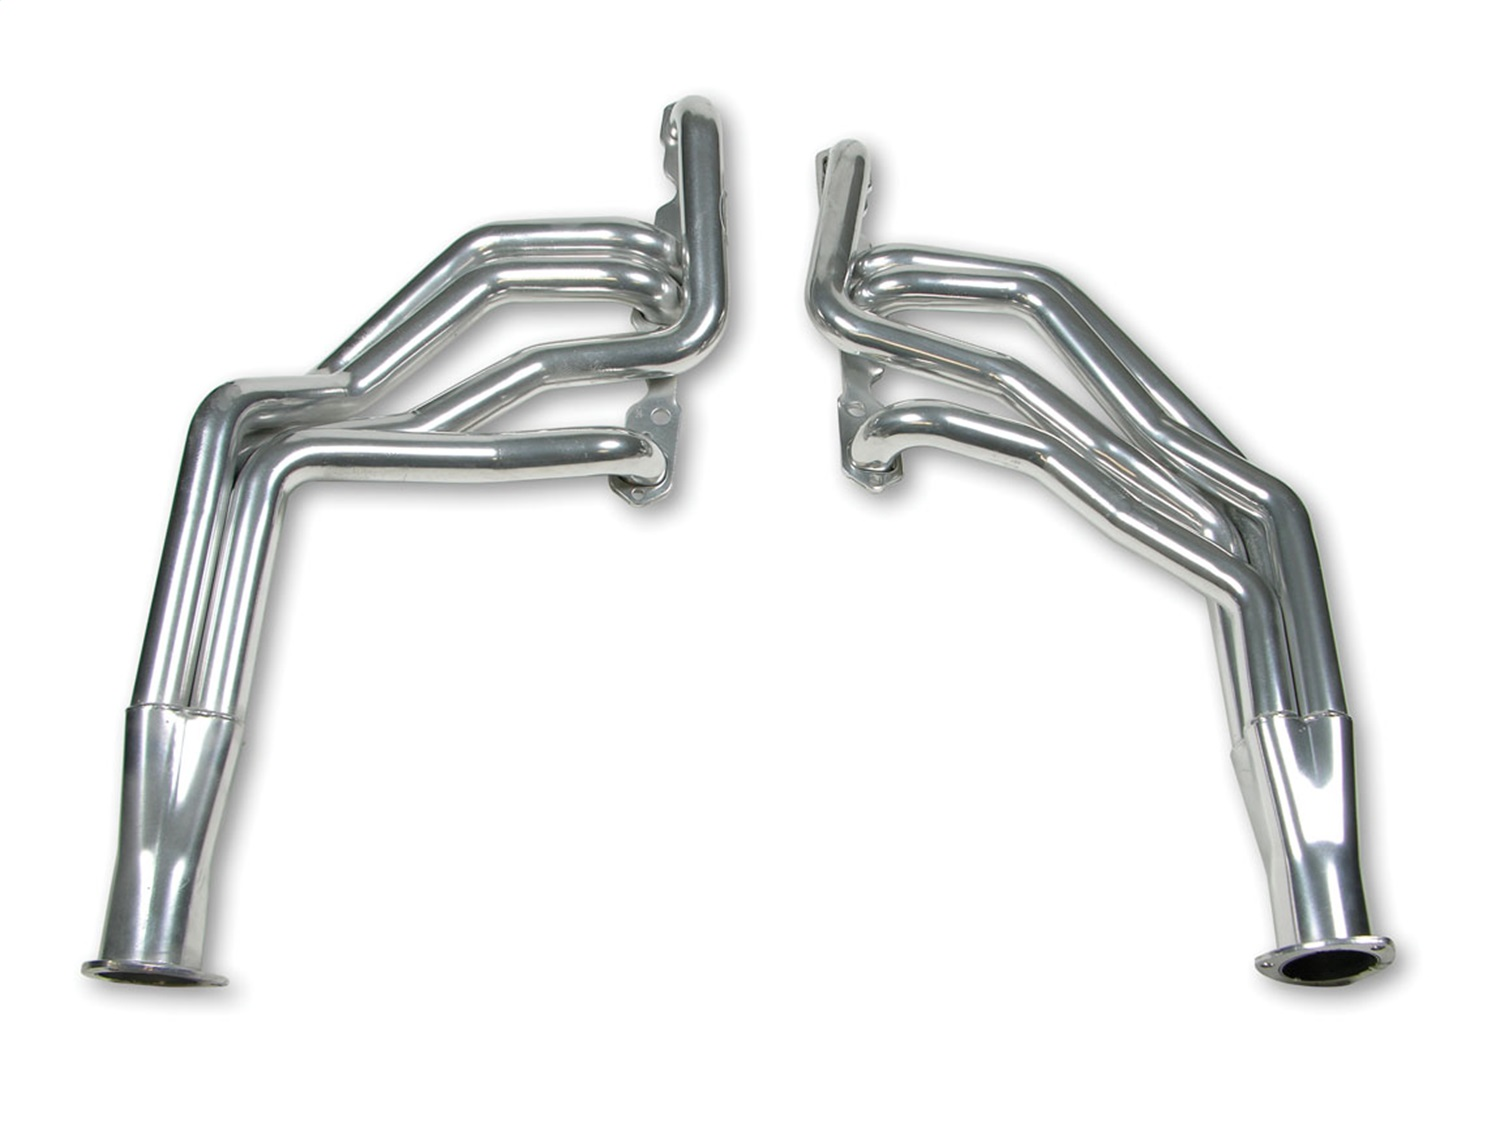 Hooker Headers 2243-1HKR Super Competition Long Tube Header Fits 63-67 Chevy II